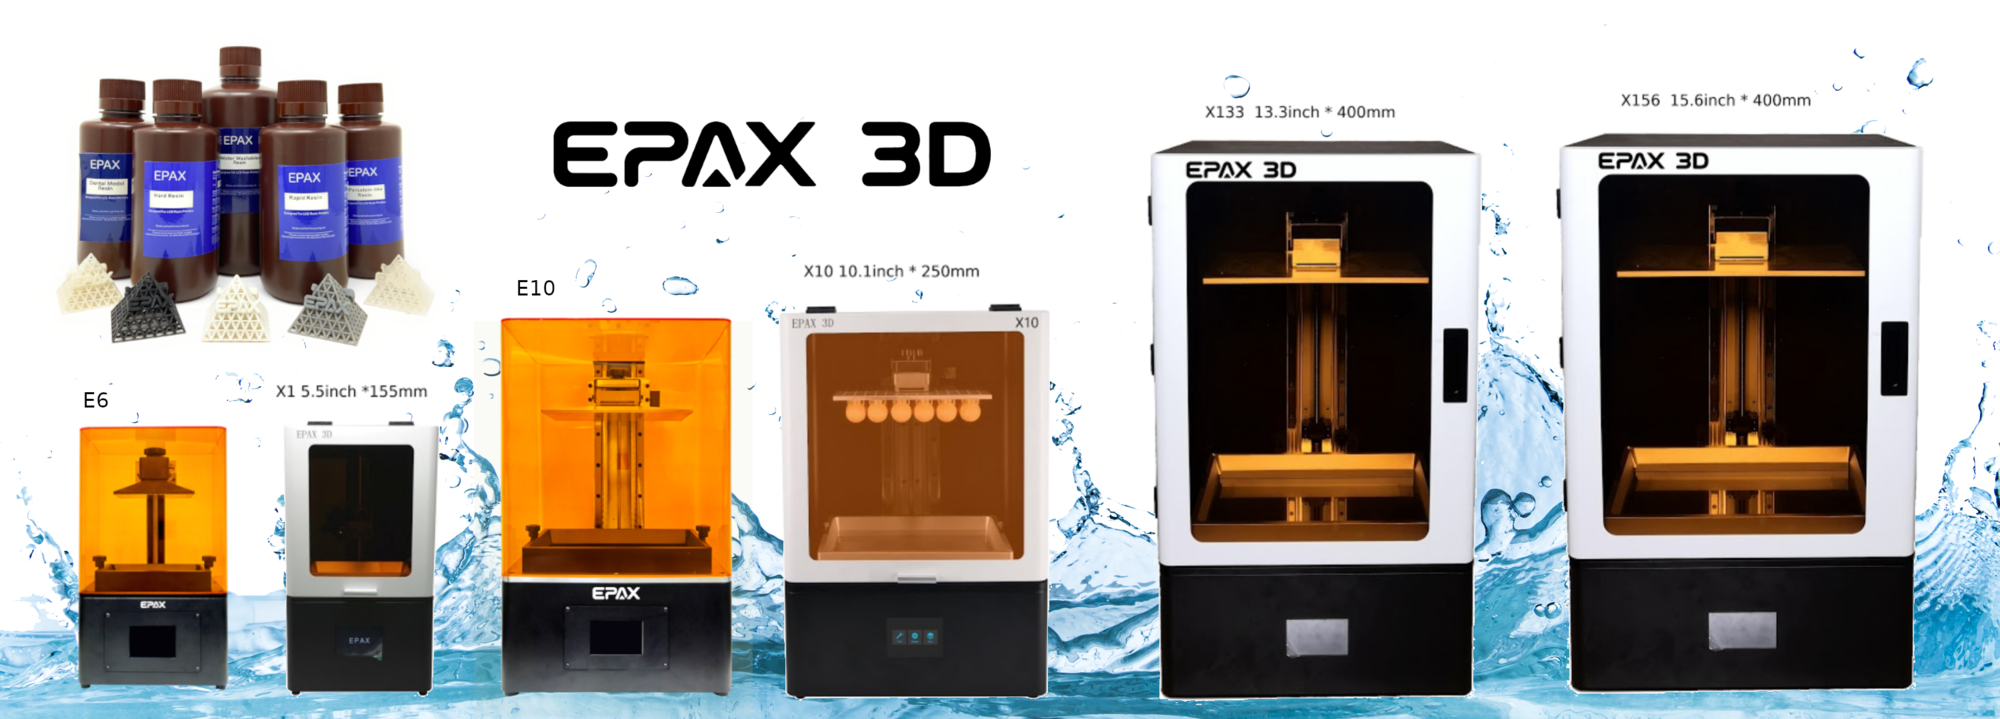 Epax3D Epax resin 3D-printer line-up compatible with liqcreate engineering resins